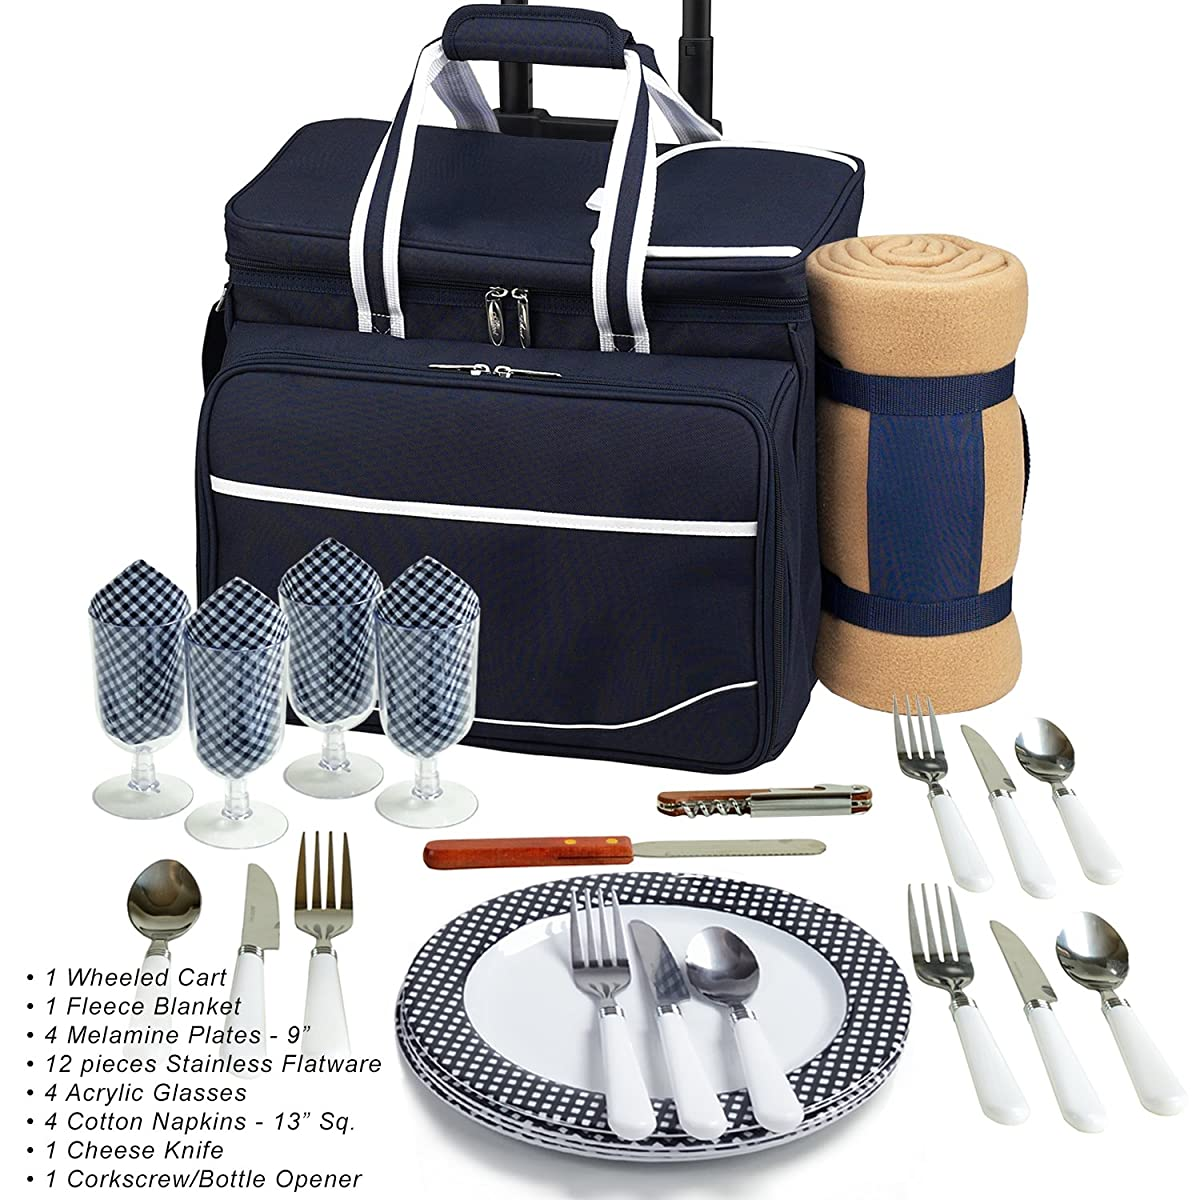 Picnic at Ascot Equipped Picnic Cooler On Wheels With Blanket, Navy/White With Gingham